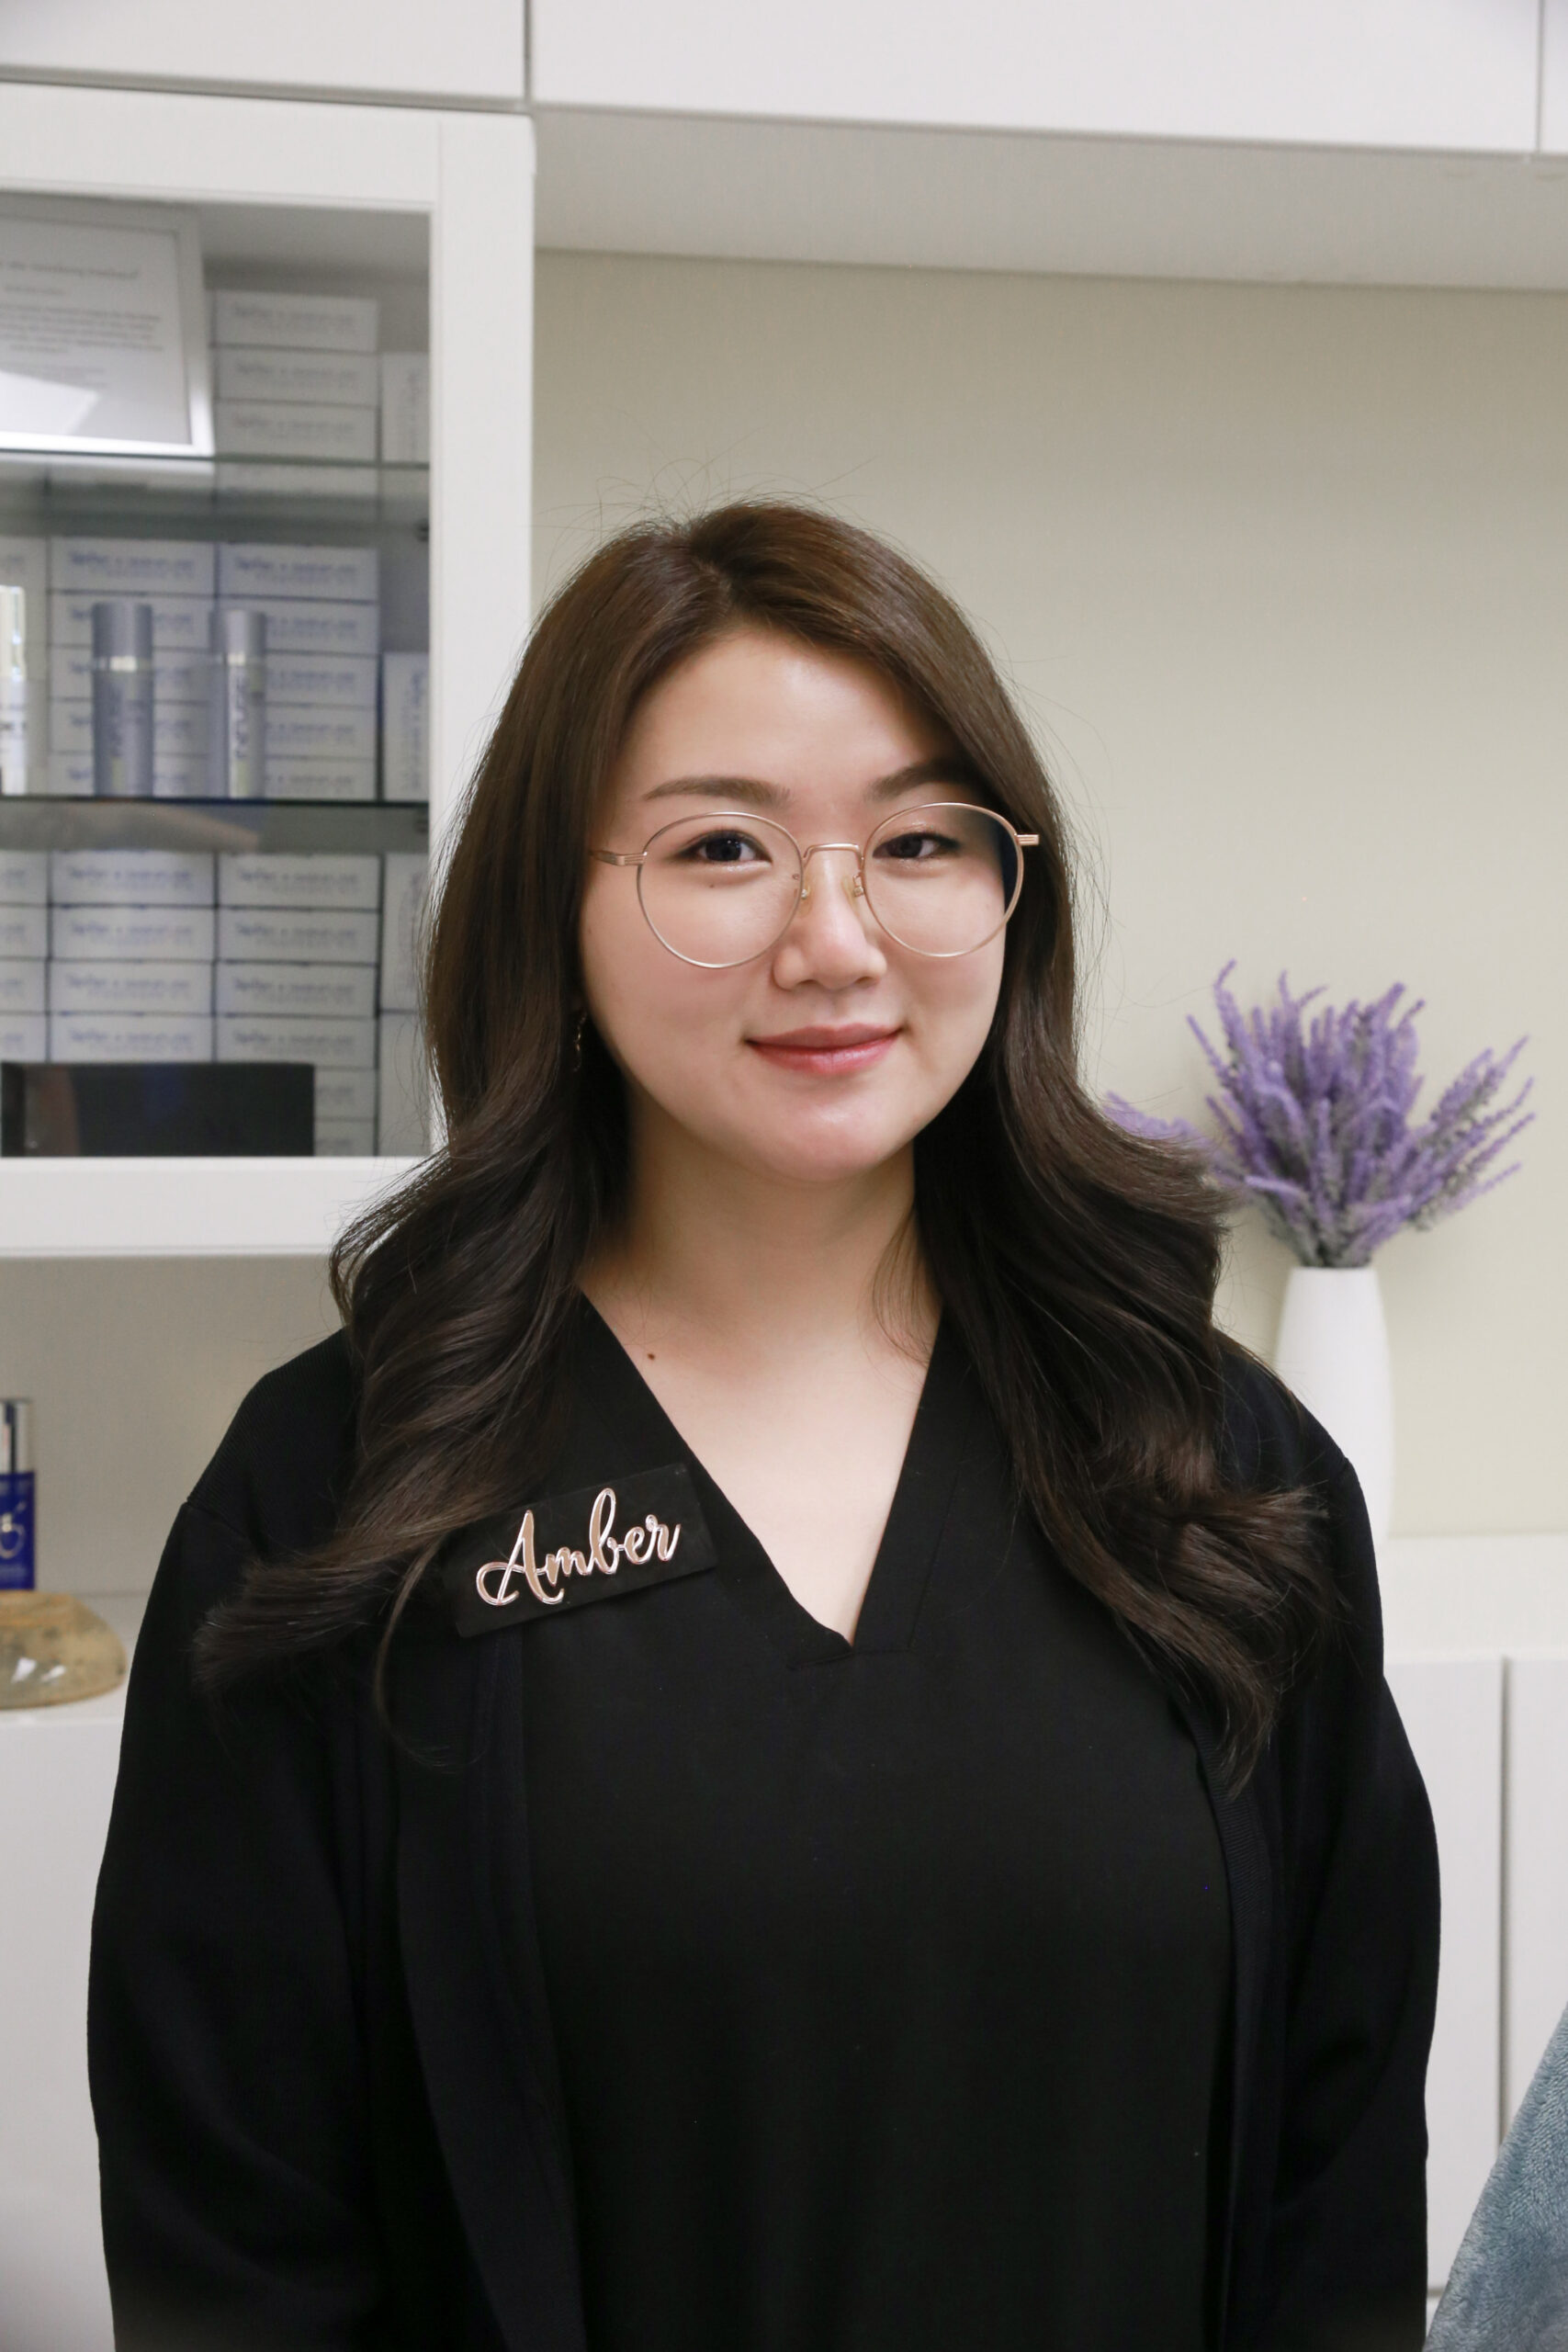 Meet Amber from Heavenly Plastic Surgery!